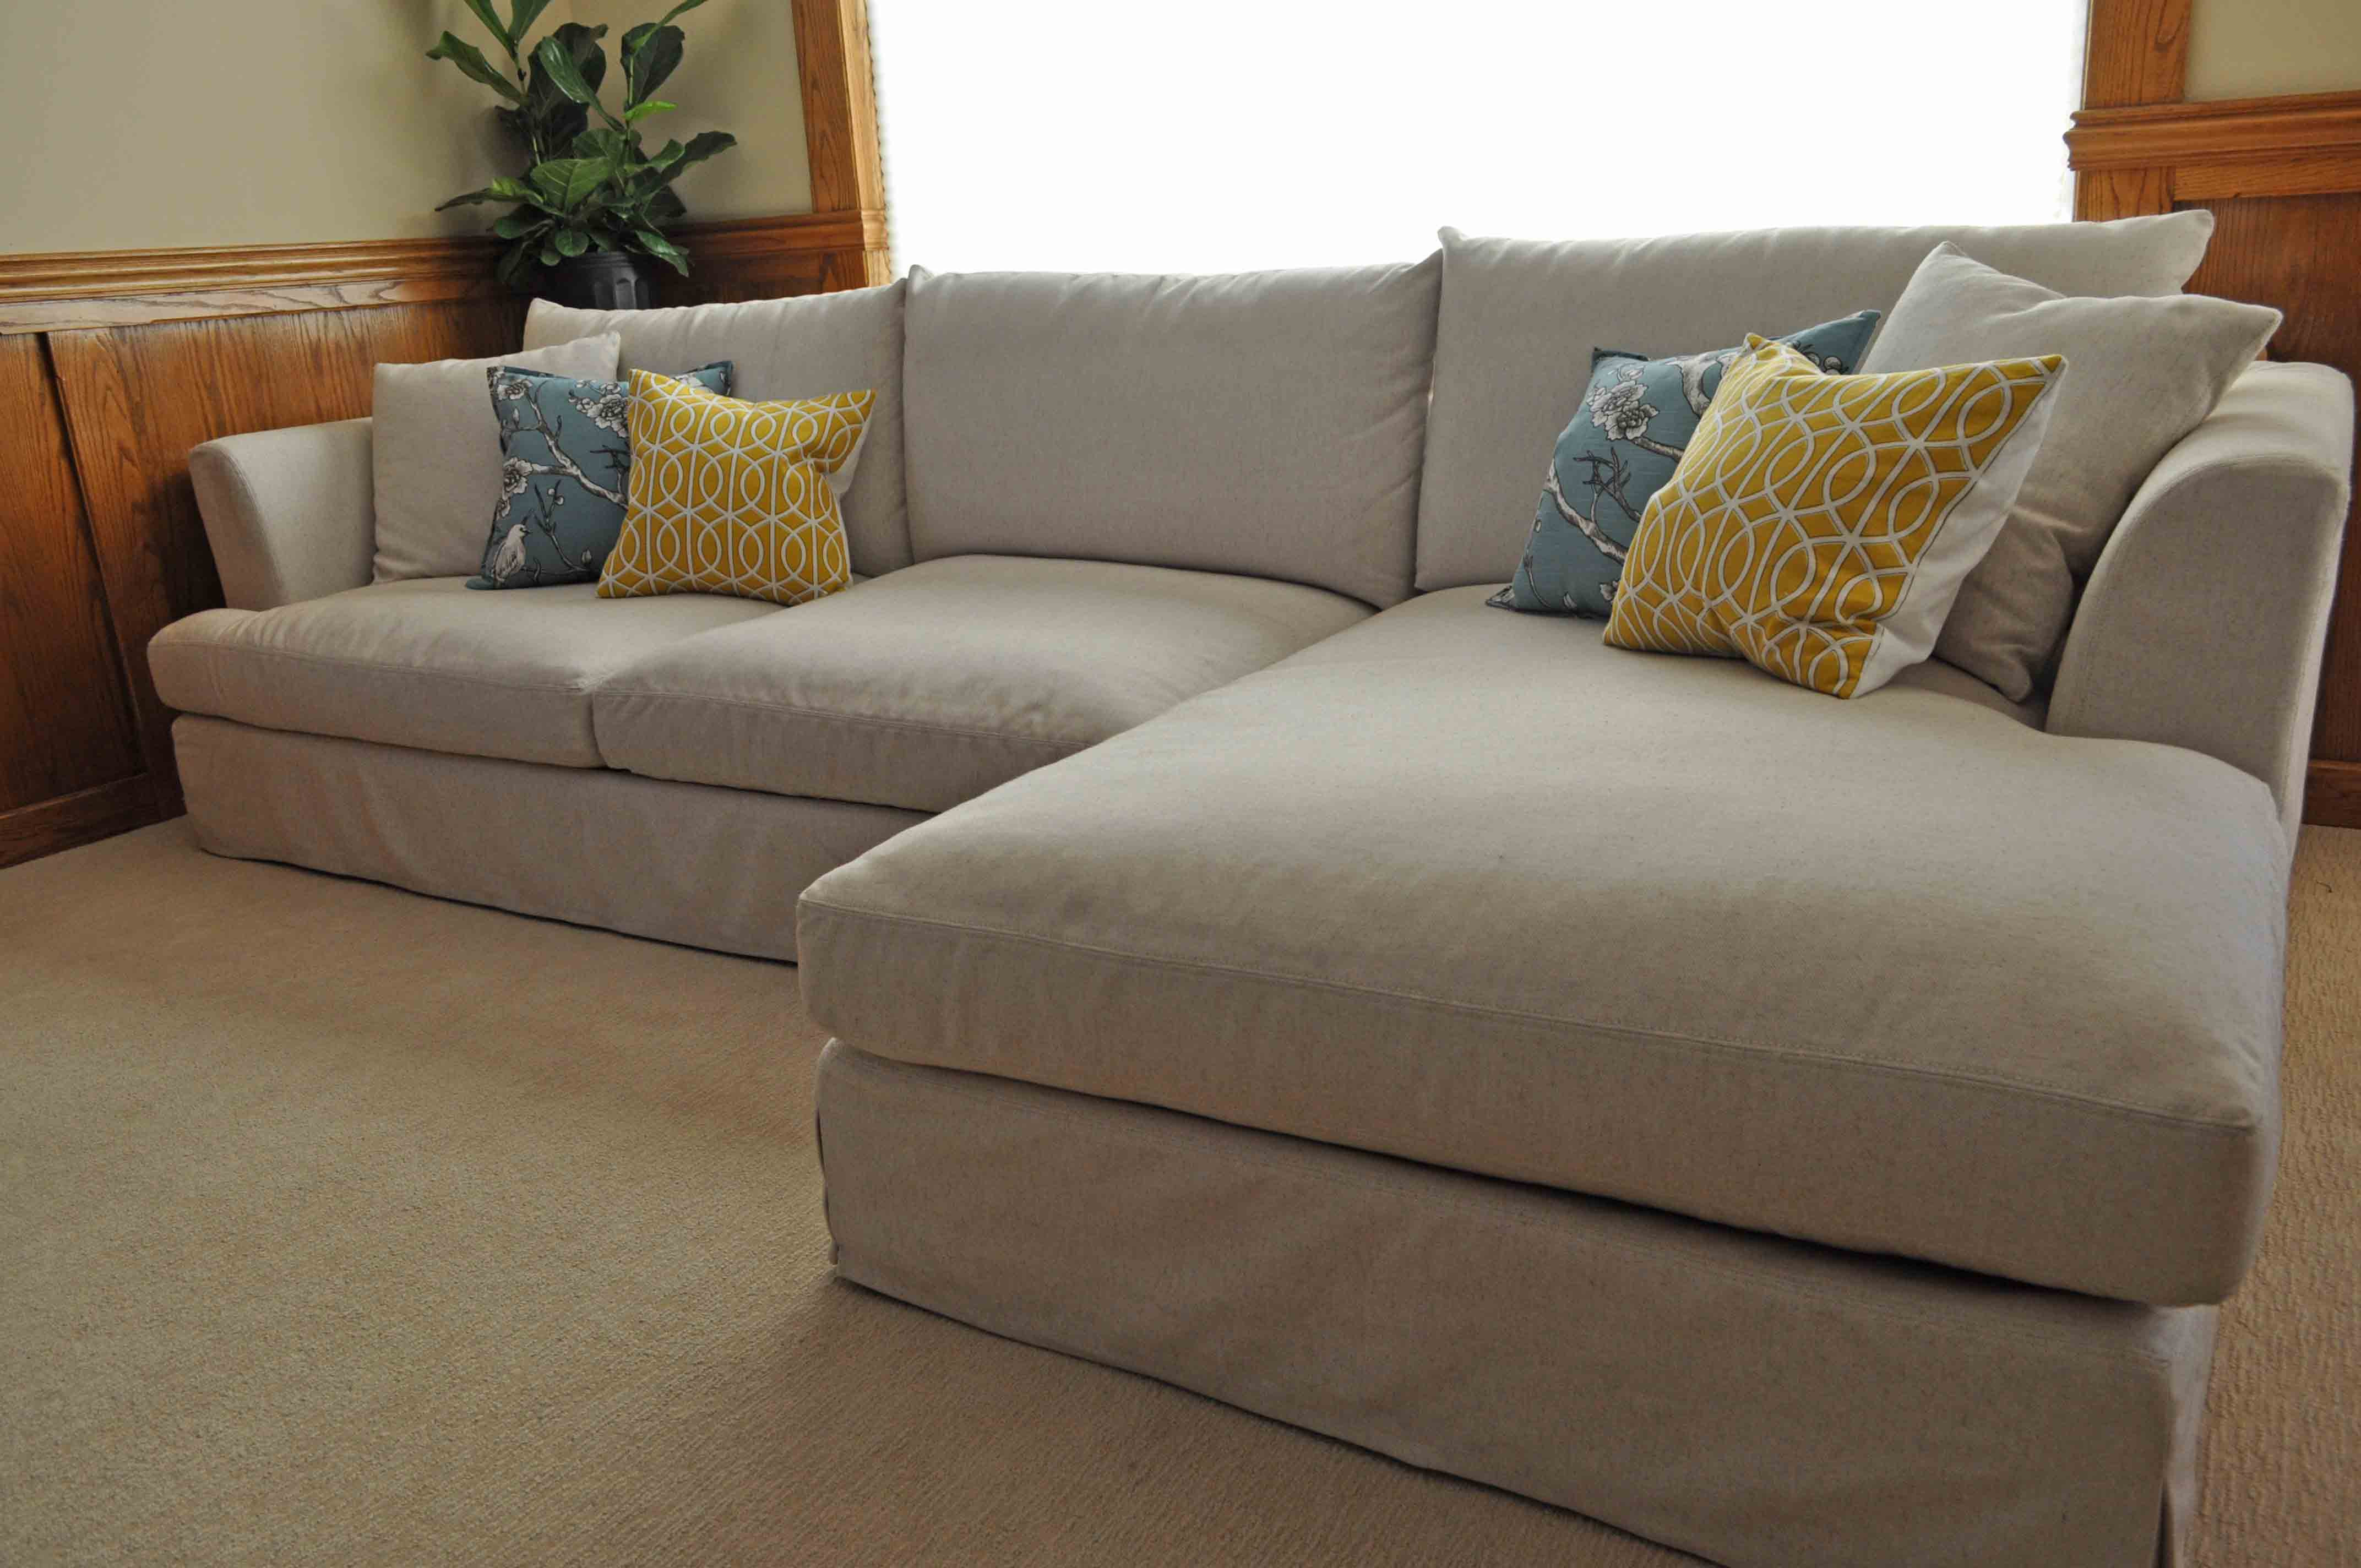 Best ideas about Most Comfortable Sectional Sofa . Save or Pin Most fortable Sectional Sofa With Chaise Now.